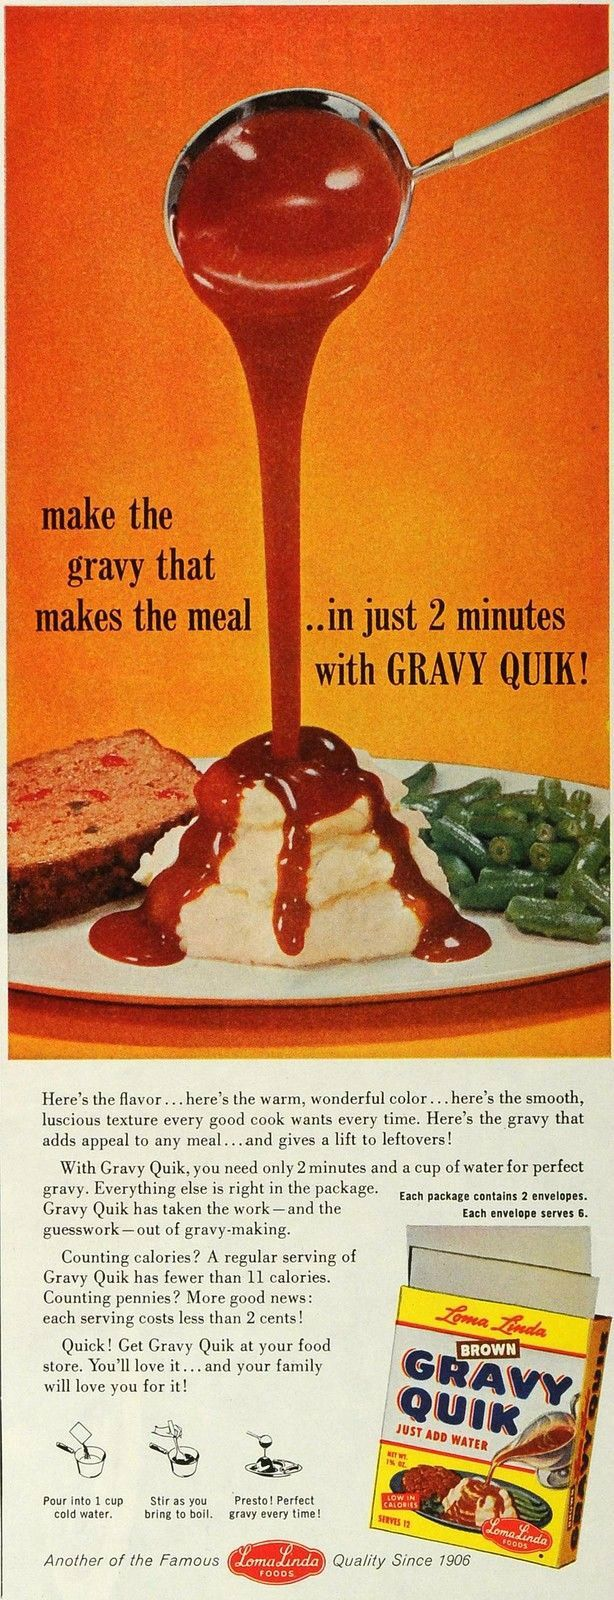 1959 loma linda foods advert for loma linda bown gravy quick seventh day